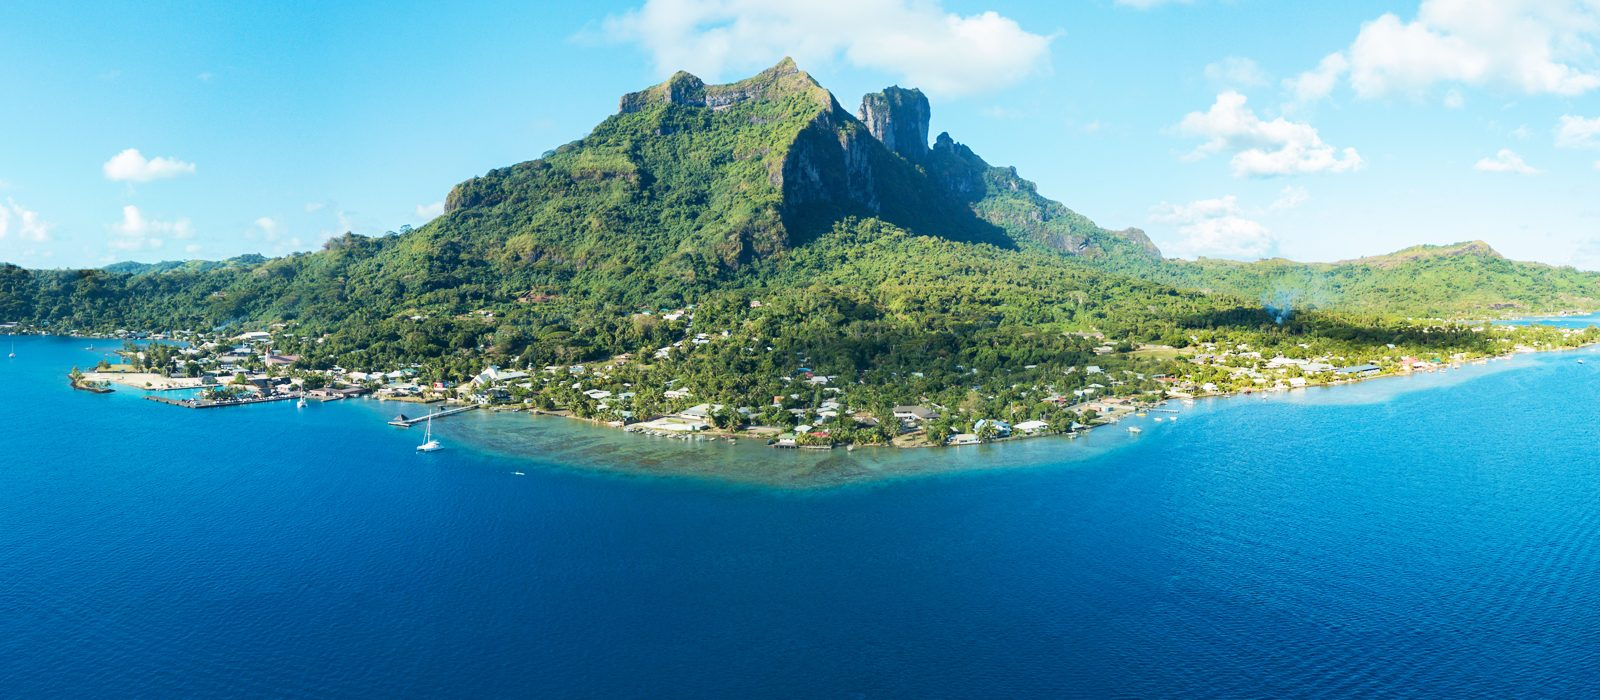 Top 10 Things To Do In Bora Bora Luxury Bora Bora Holiday Packages Header